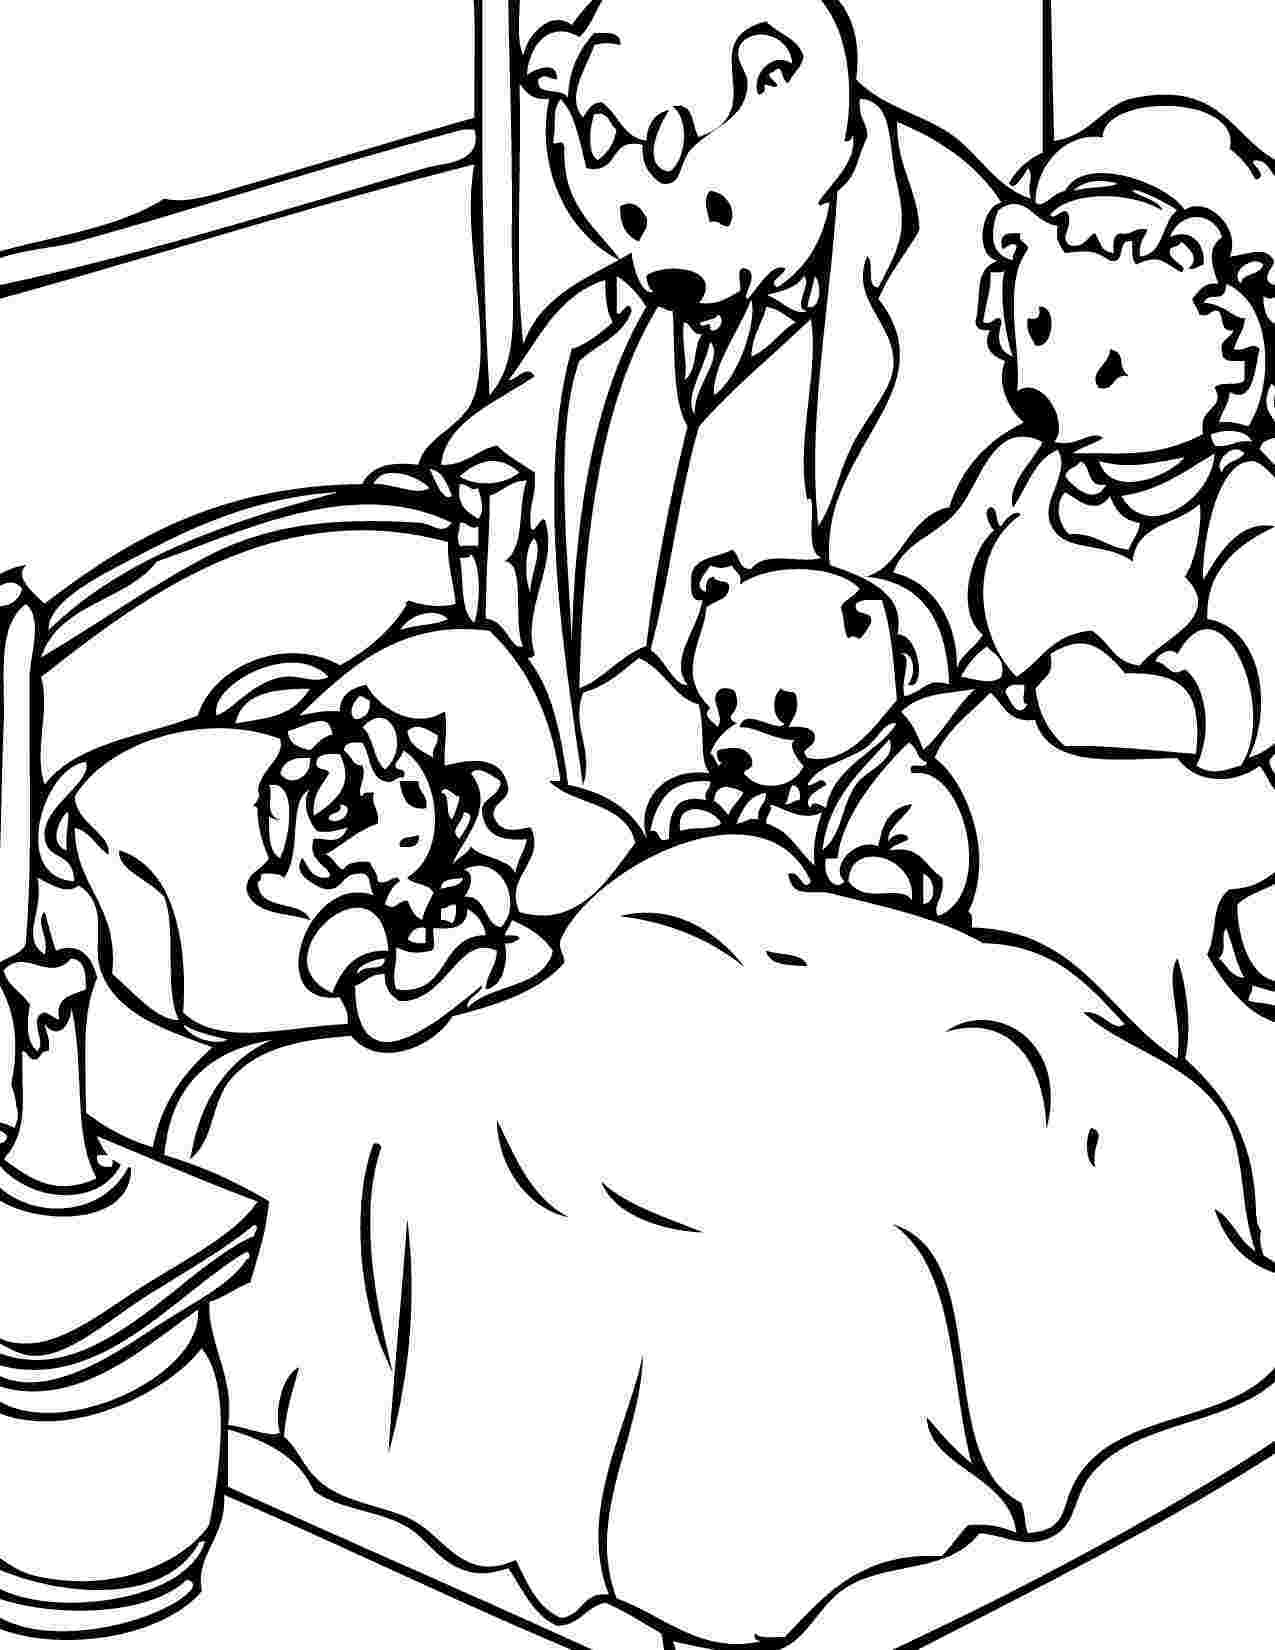 fairy tale coloring pages free fairy tale coloring pages kidsuki coloring fairy pages tale free